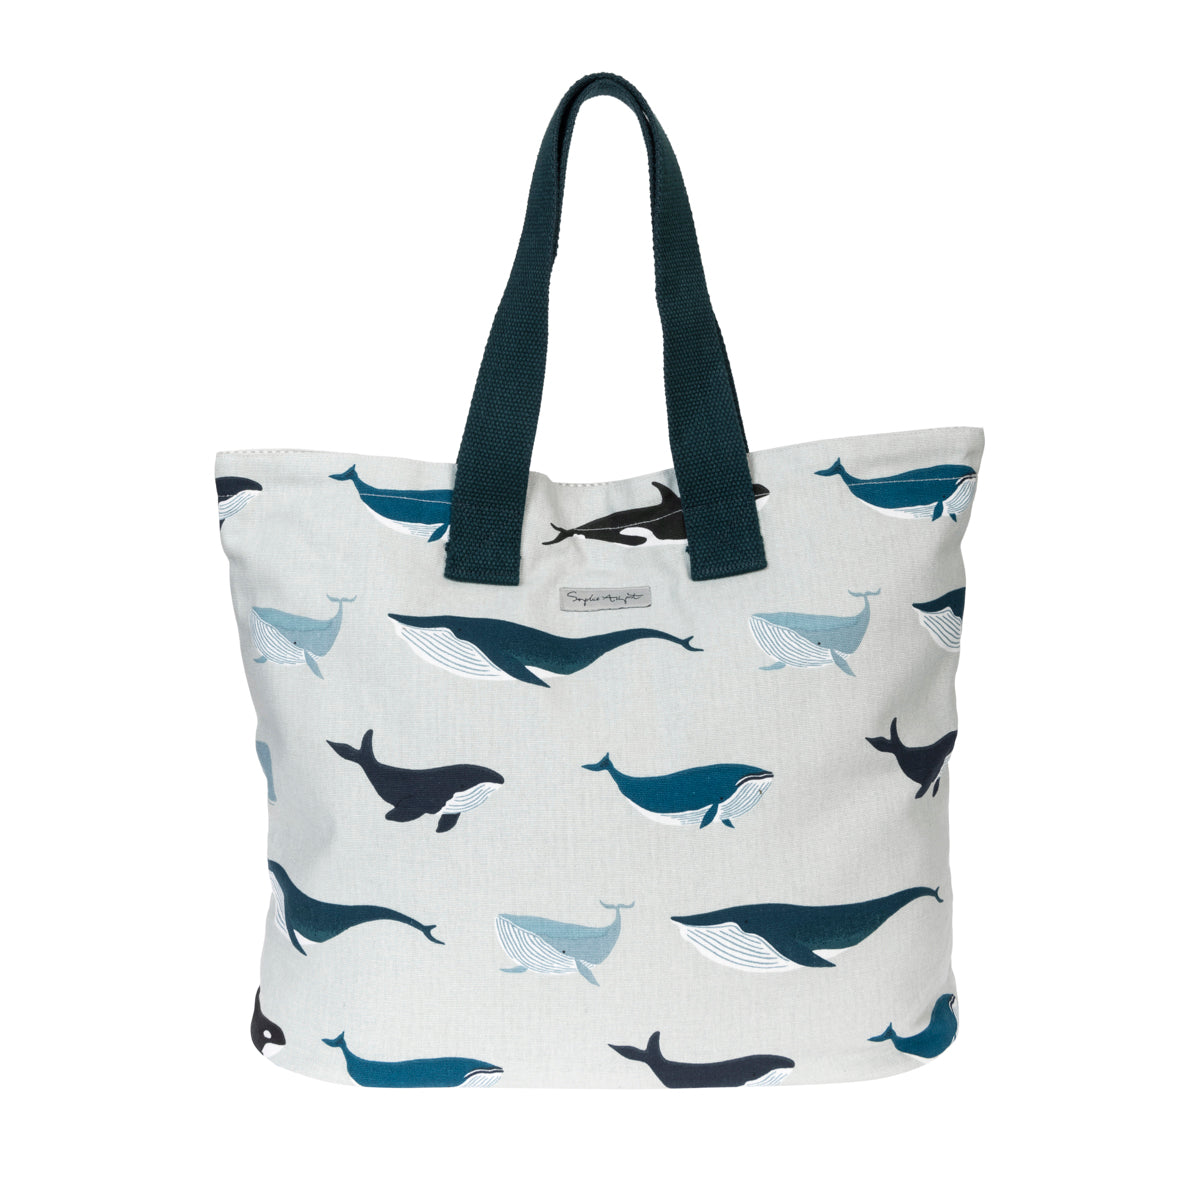 Whales Everyday Canvas  Bag by Sophie Allport